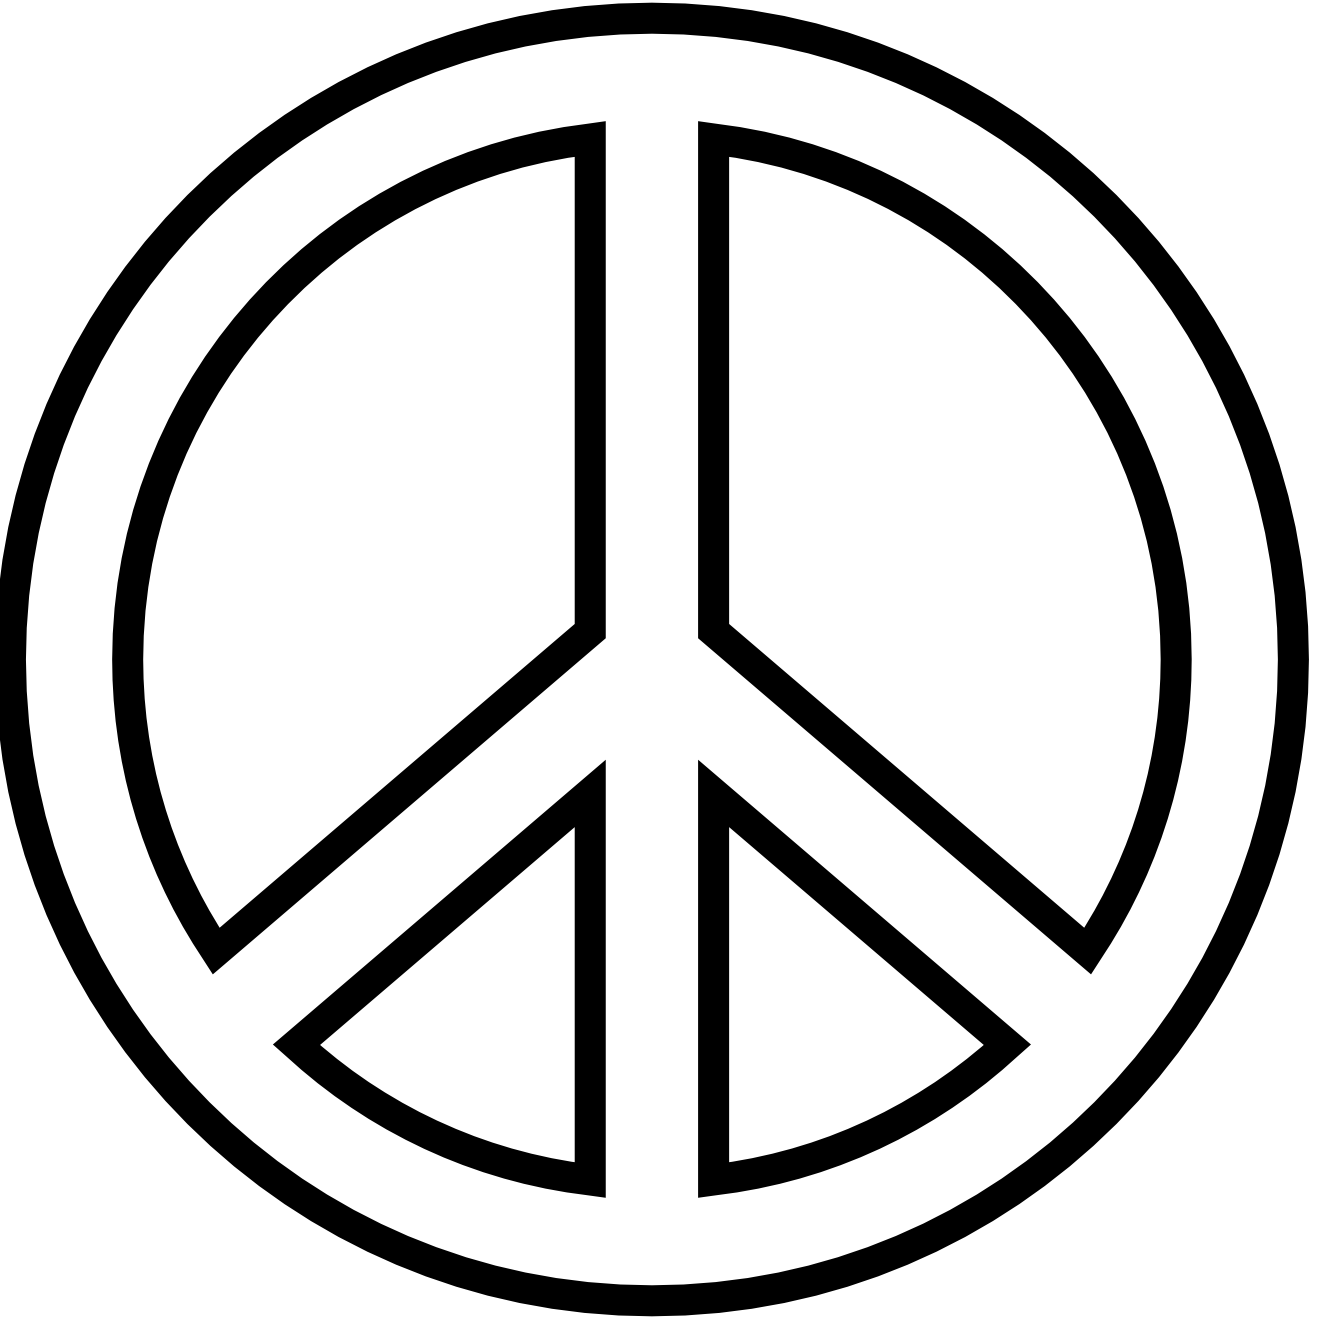 free printable peace sign coloring pages free printable peace sign coloring pages cool2bkids pages free printable coloring sign peace